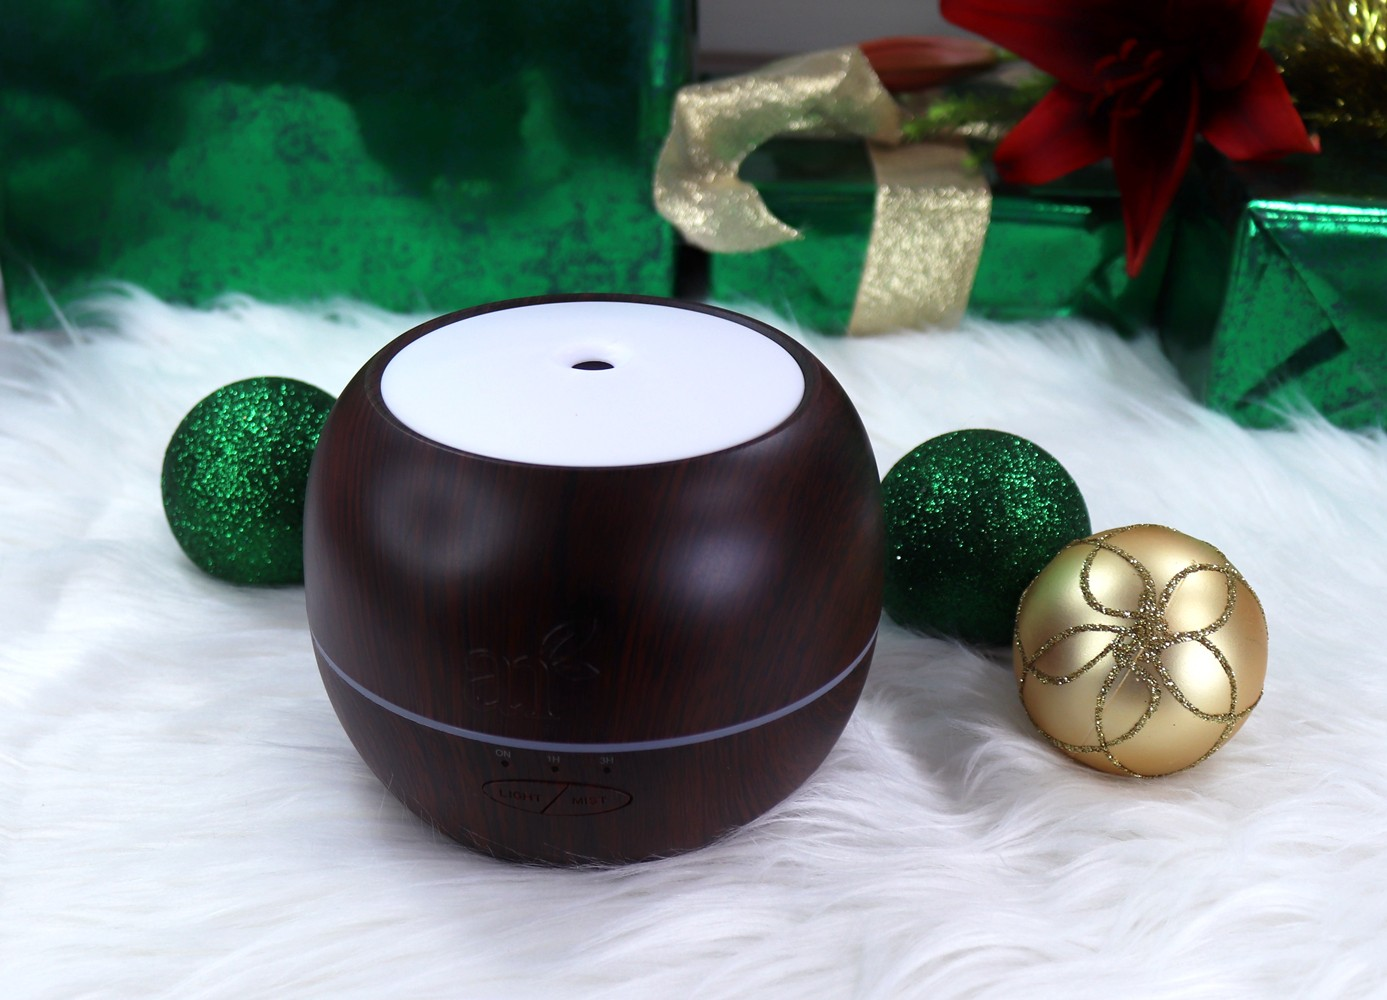 iHerb Holiday Gift Guide - Artnaturals Wood Grain Diffuser